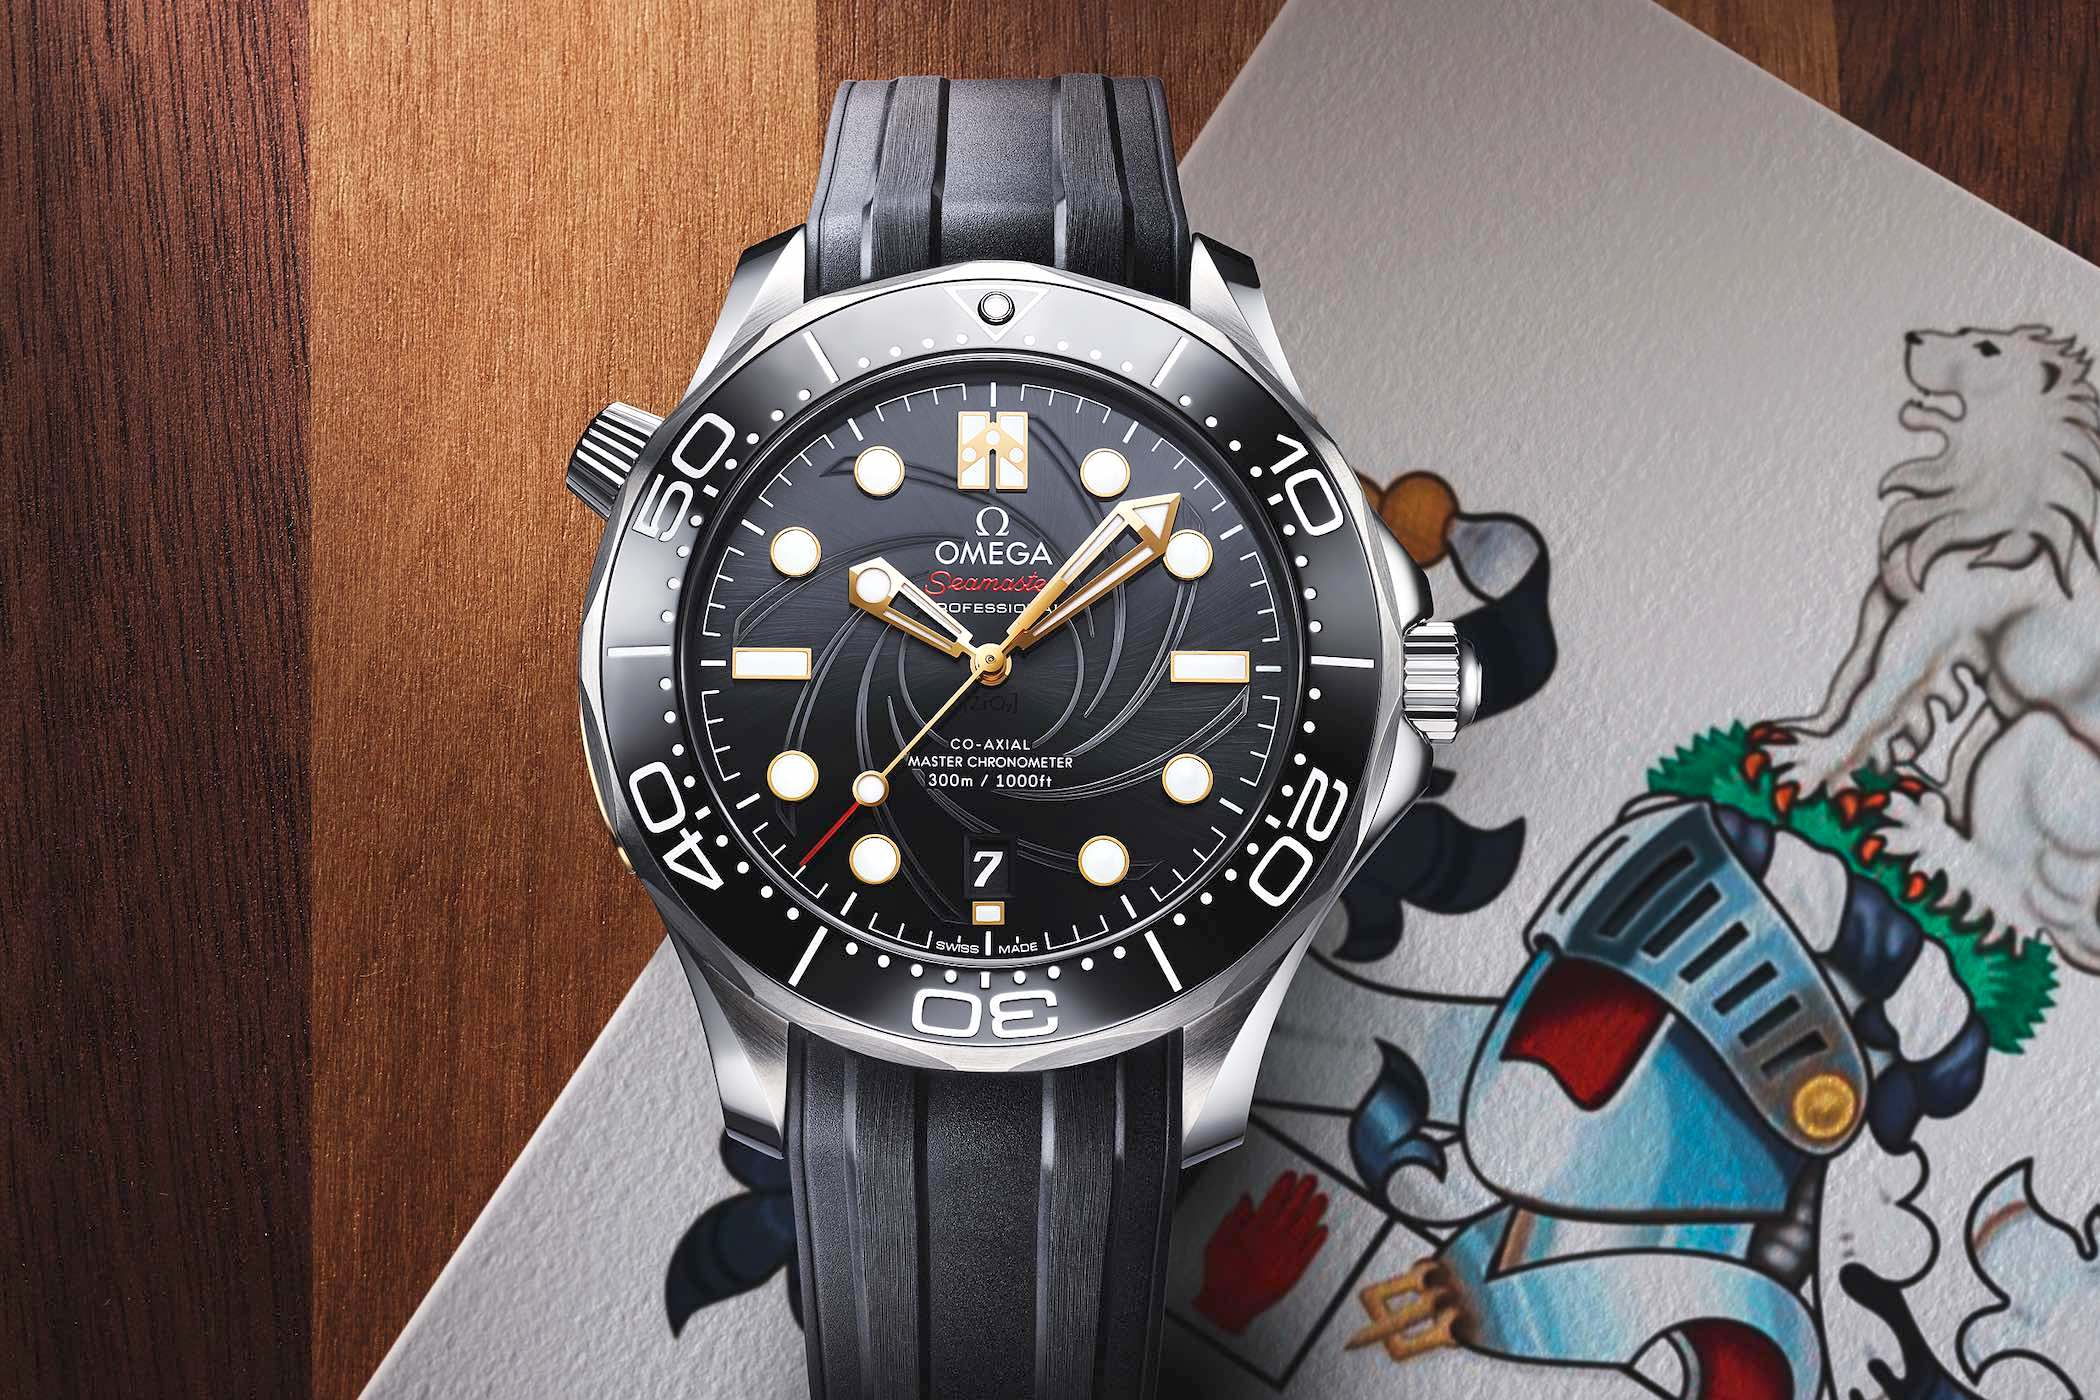 Omega-Seamaster-Diver-300M-On-Her-Majesty's-Secret-Service-50th-Anniversary-210.22.42.20.01.004